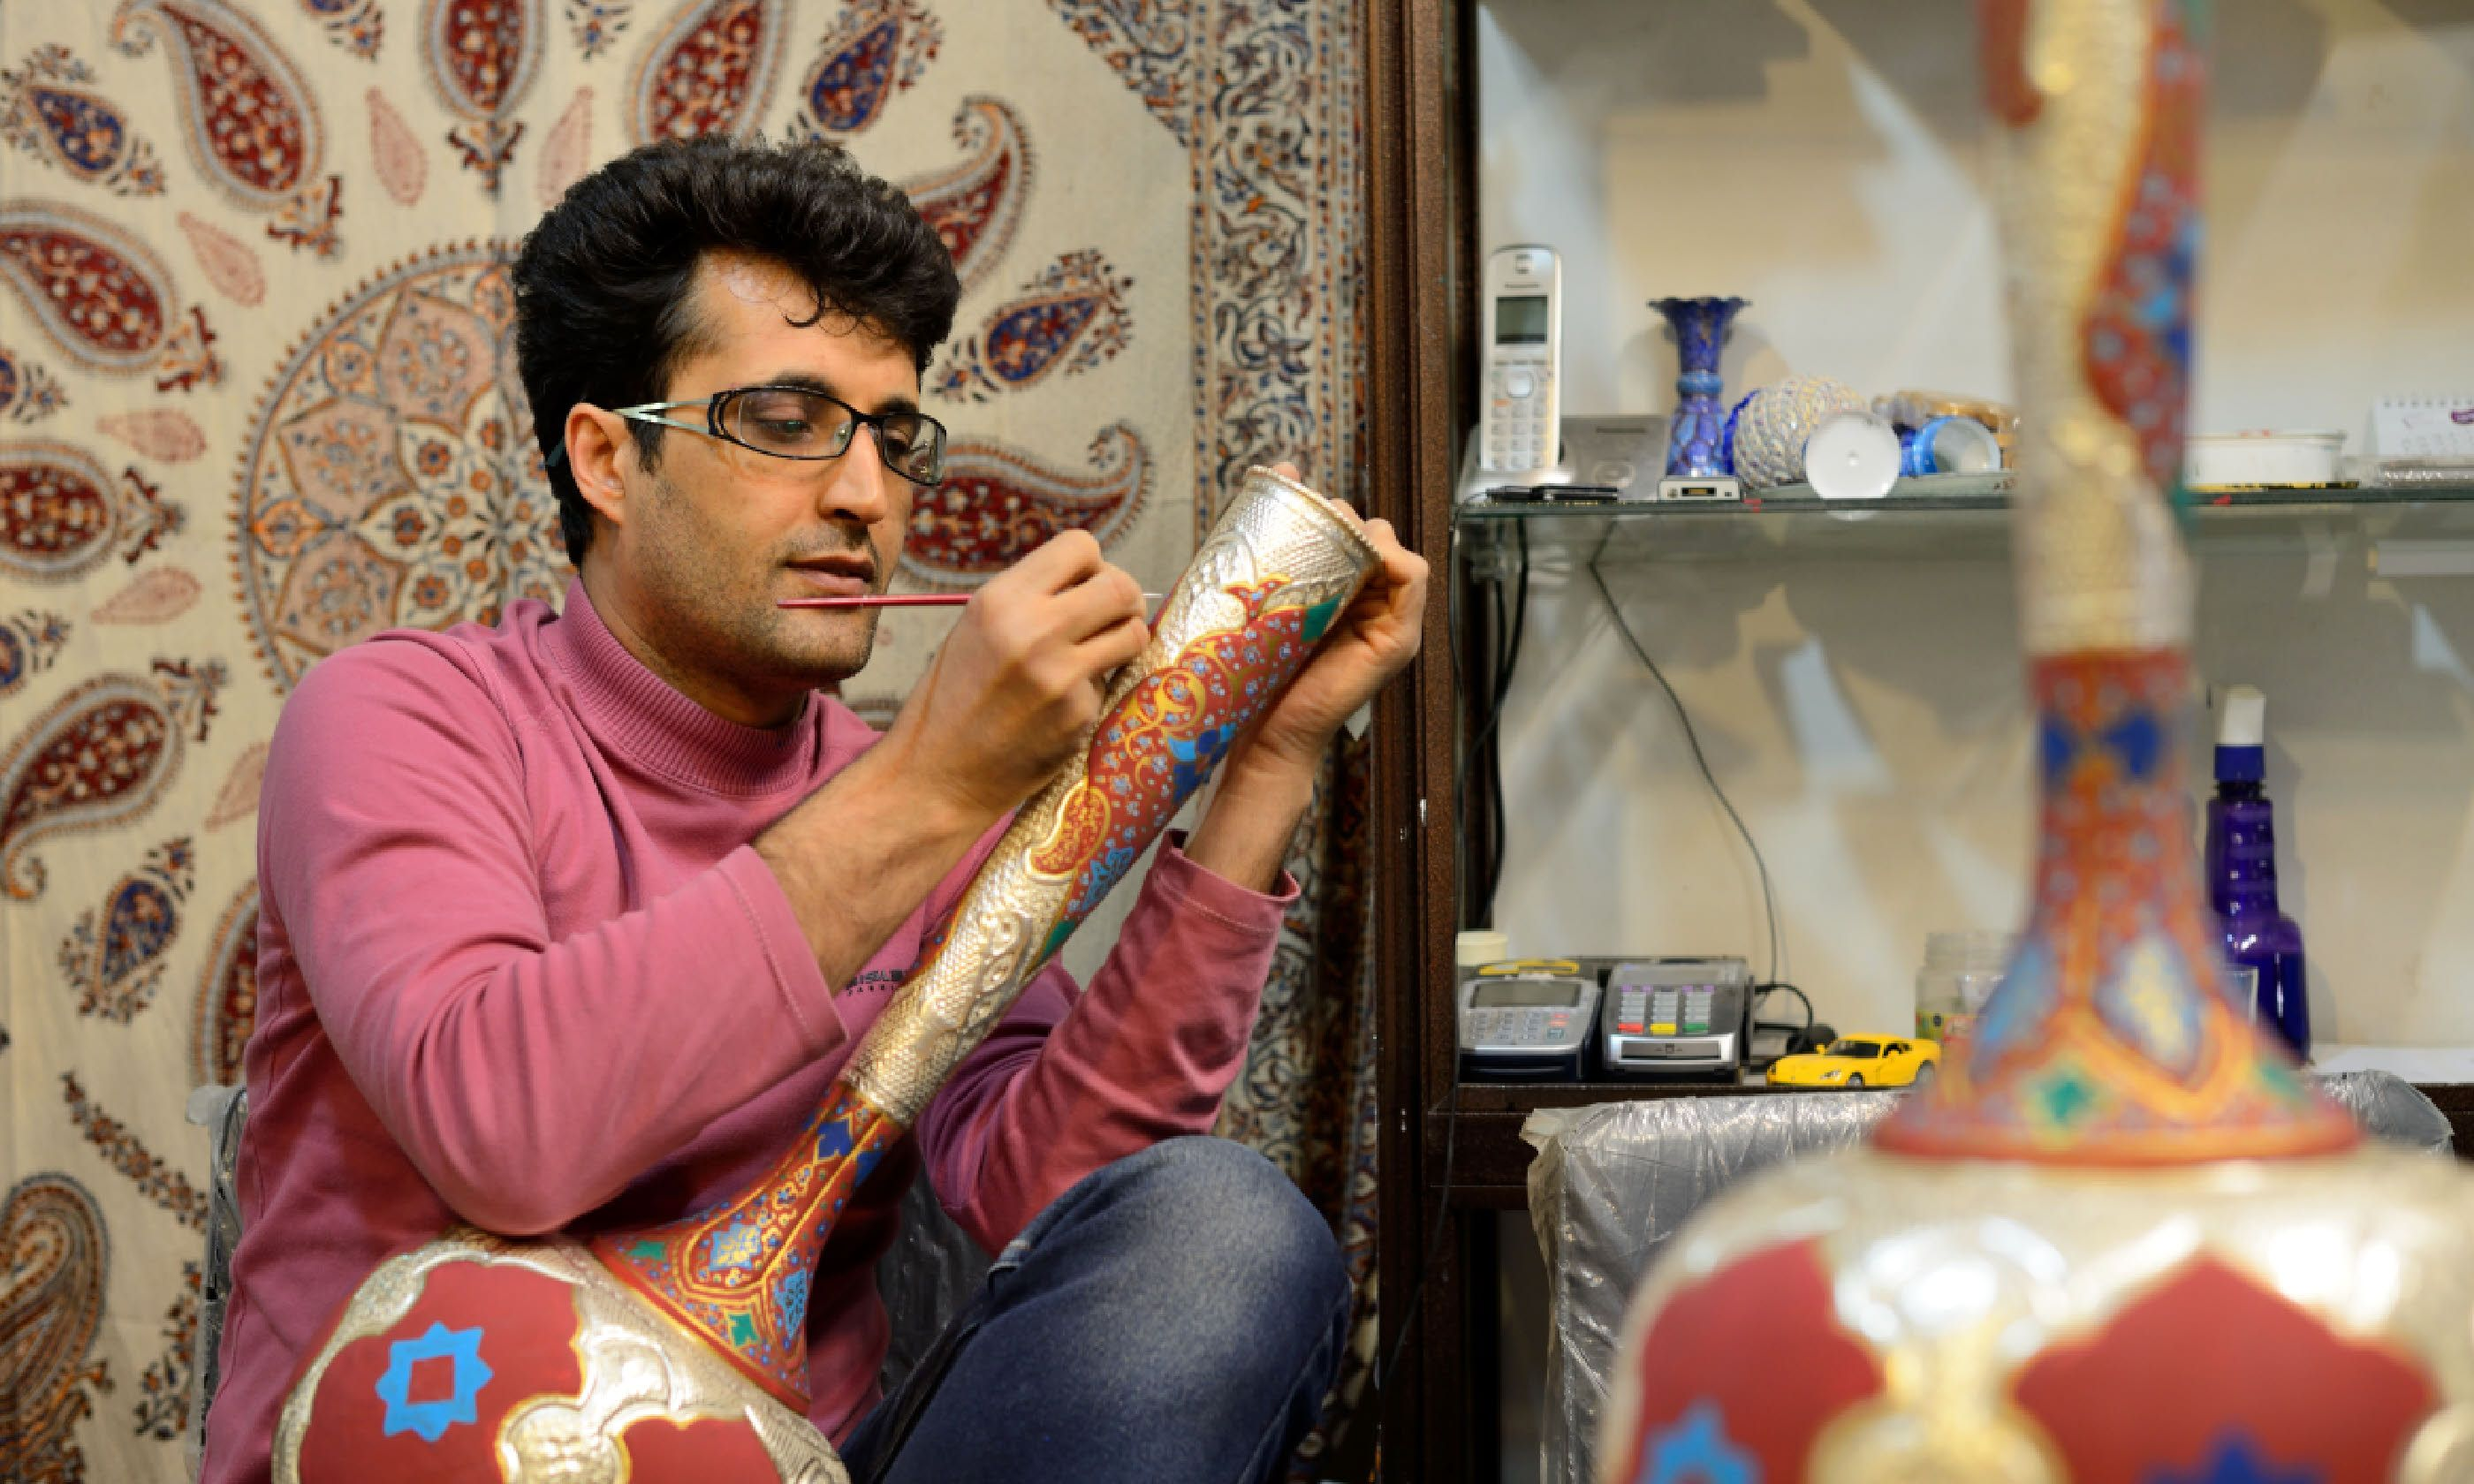 Man making traditional Iranian vase in Isfahan market (Shutterstock)